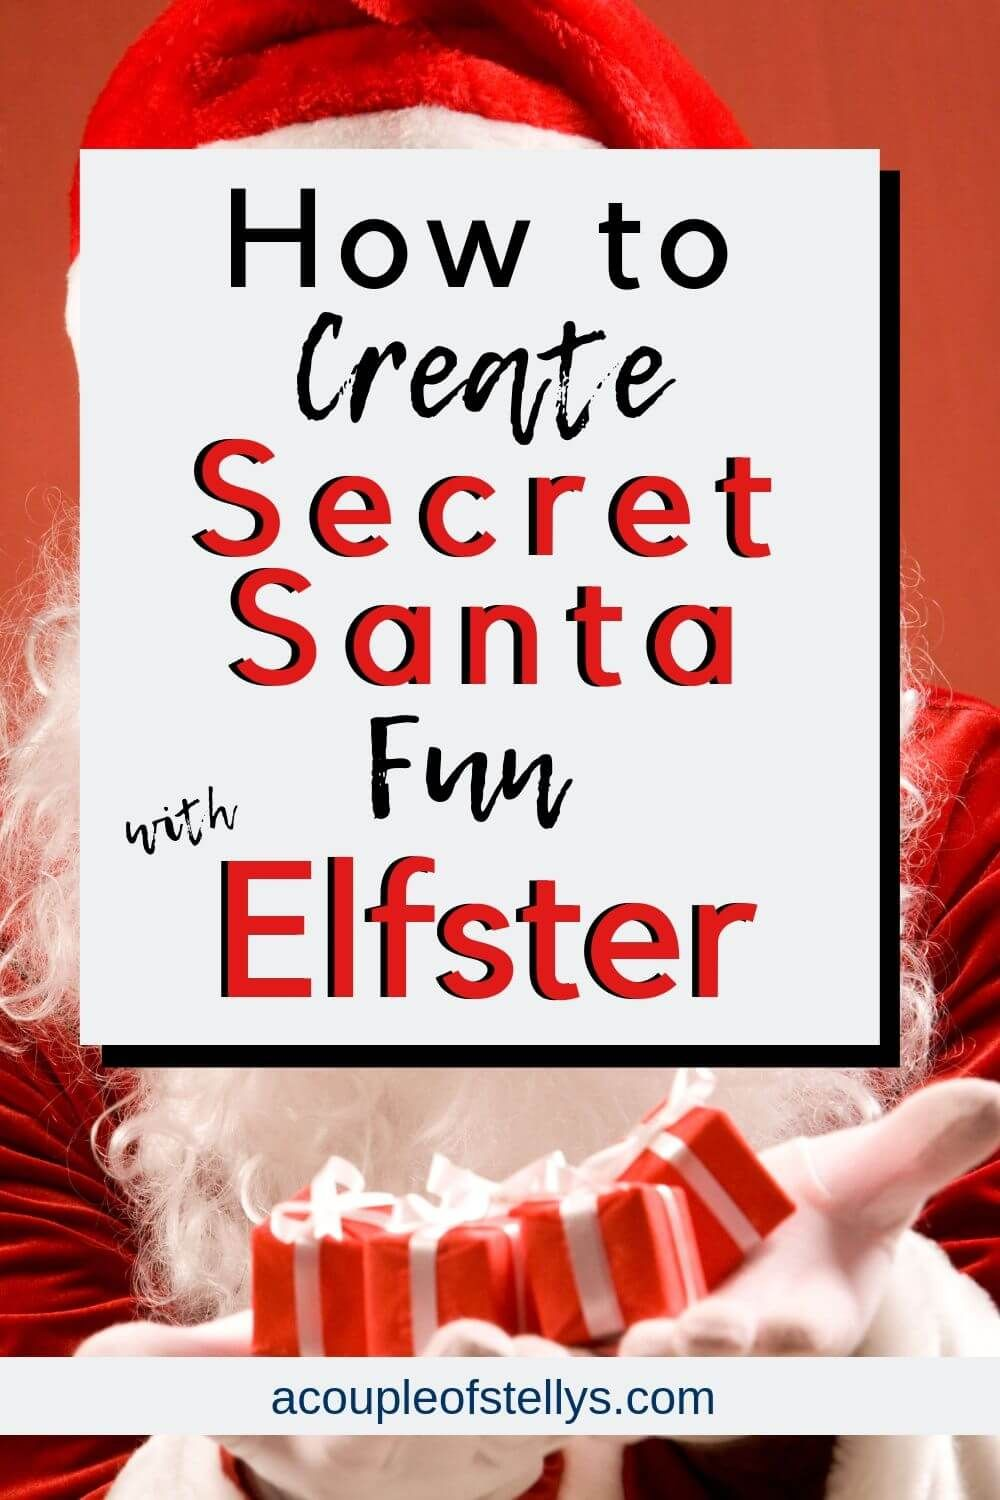 How to Create Secret Santa Fun with Elfster